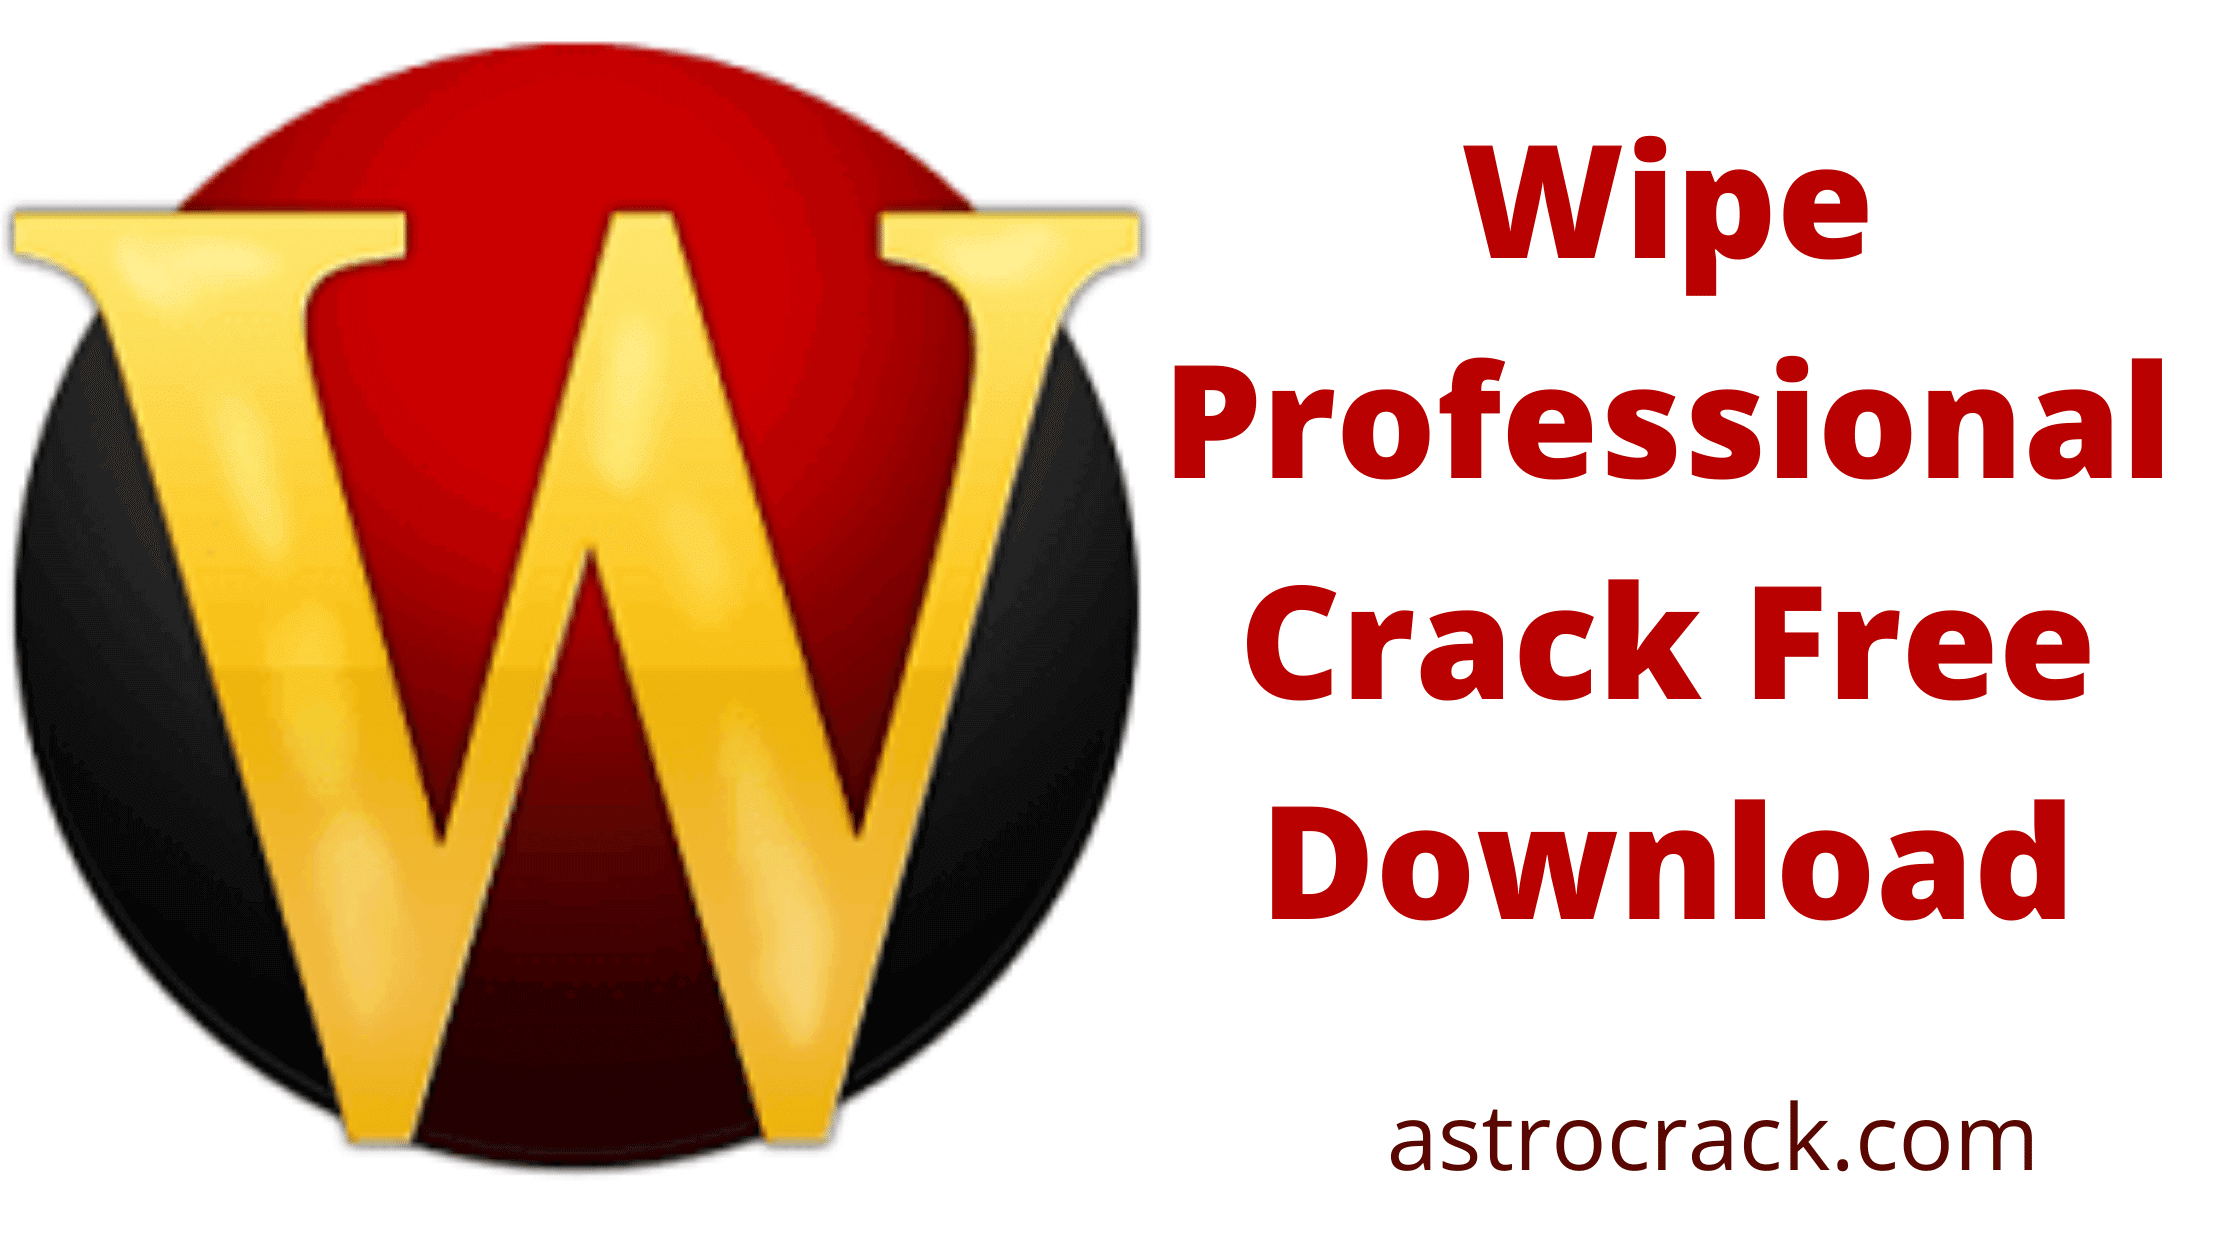 Wipe Professional, Wipe Professional crack, Wipe Professional crack download, Wipe Professional Crack patched, Wipe Professional download